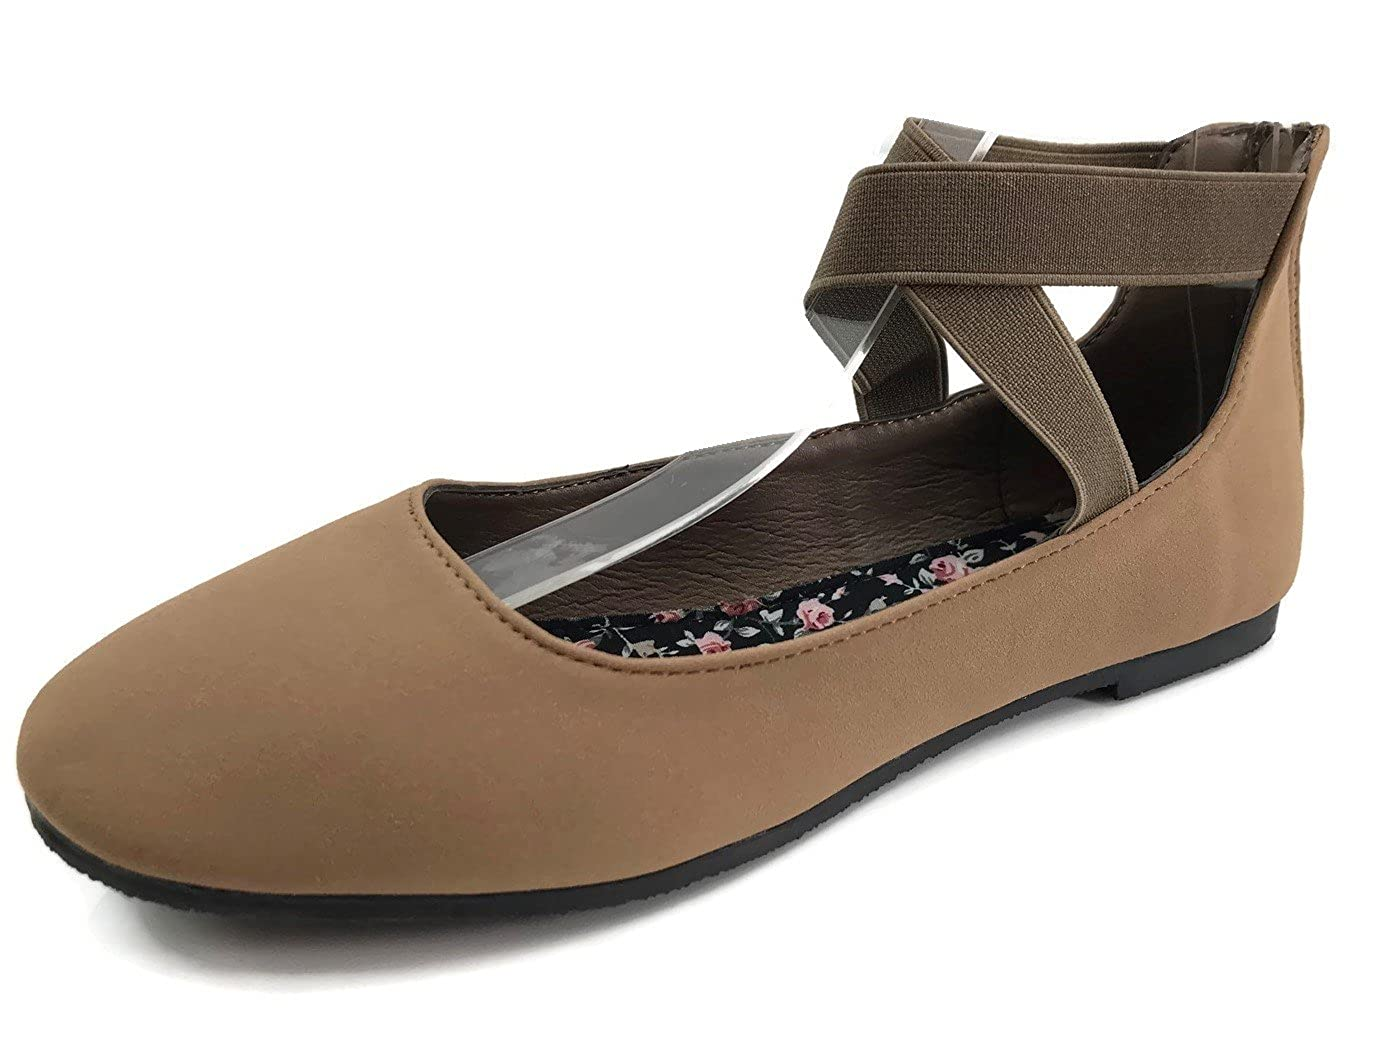 Womens and Girls Ankle Wrap Ballet Flats with Criss Cross Elastic and Zipper DANICA